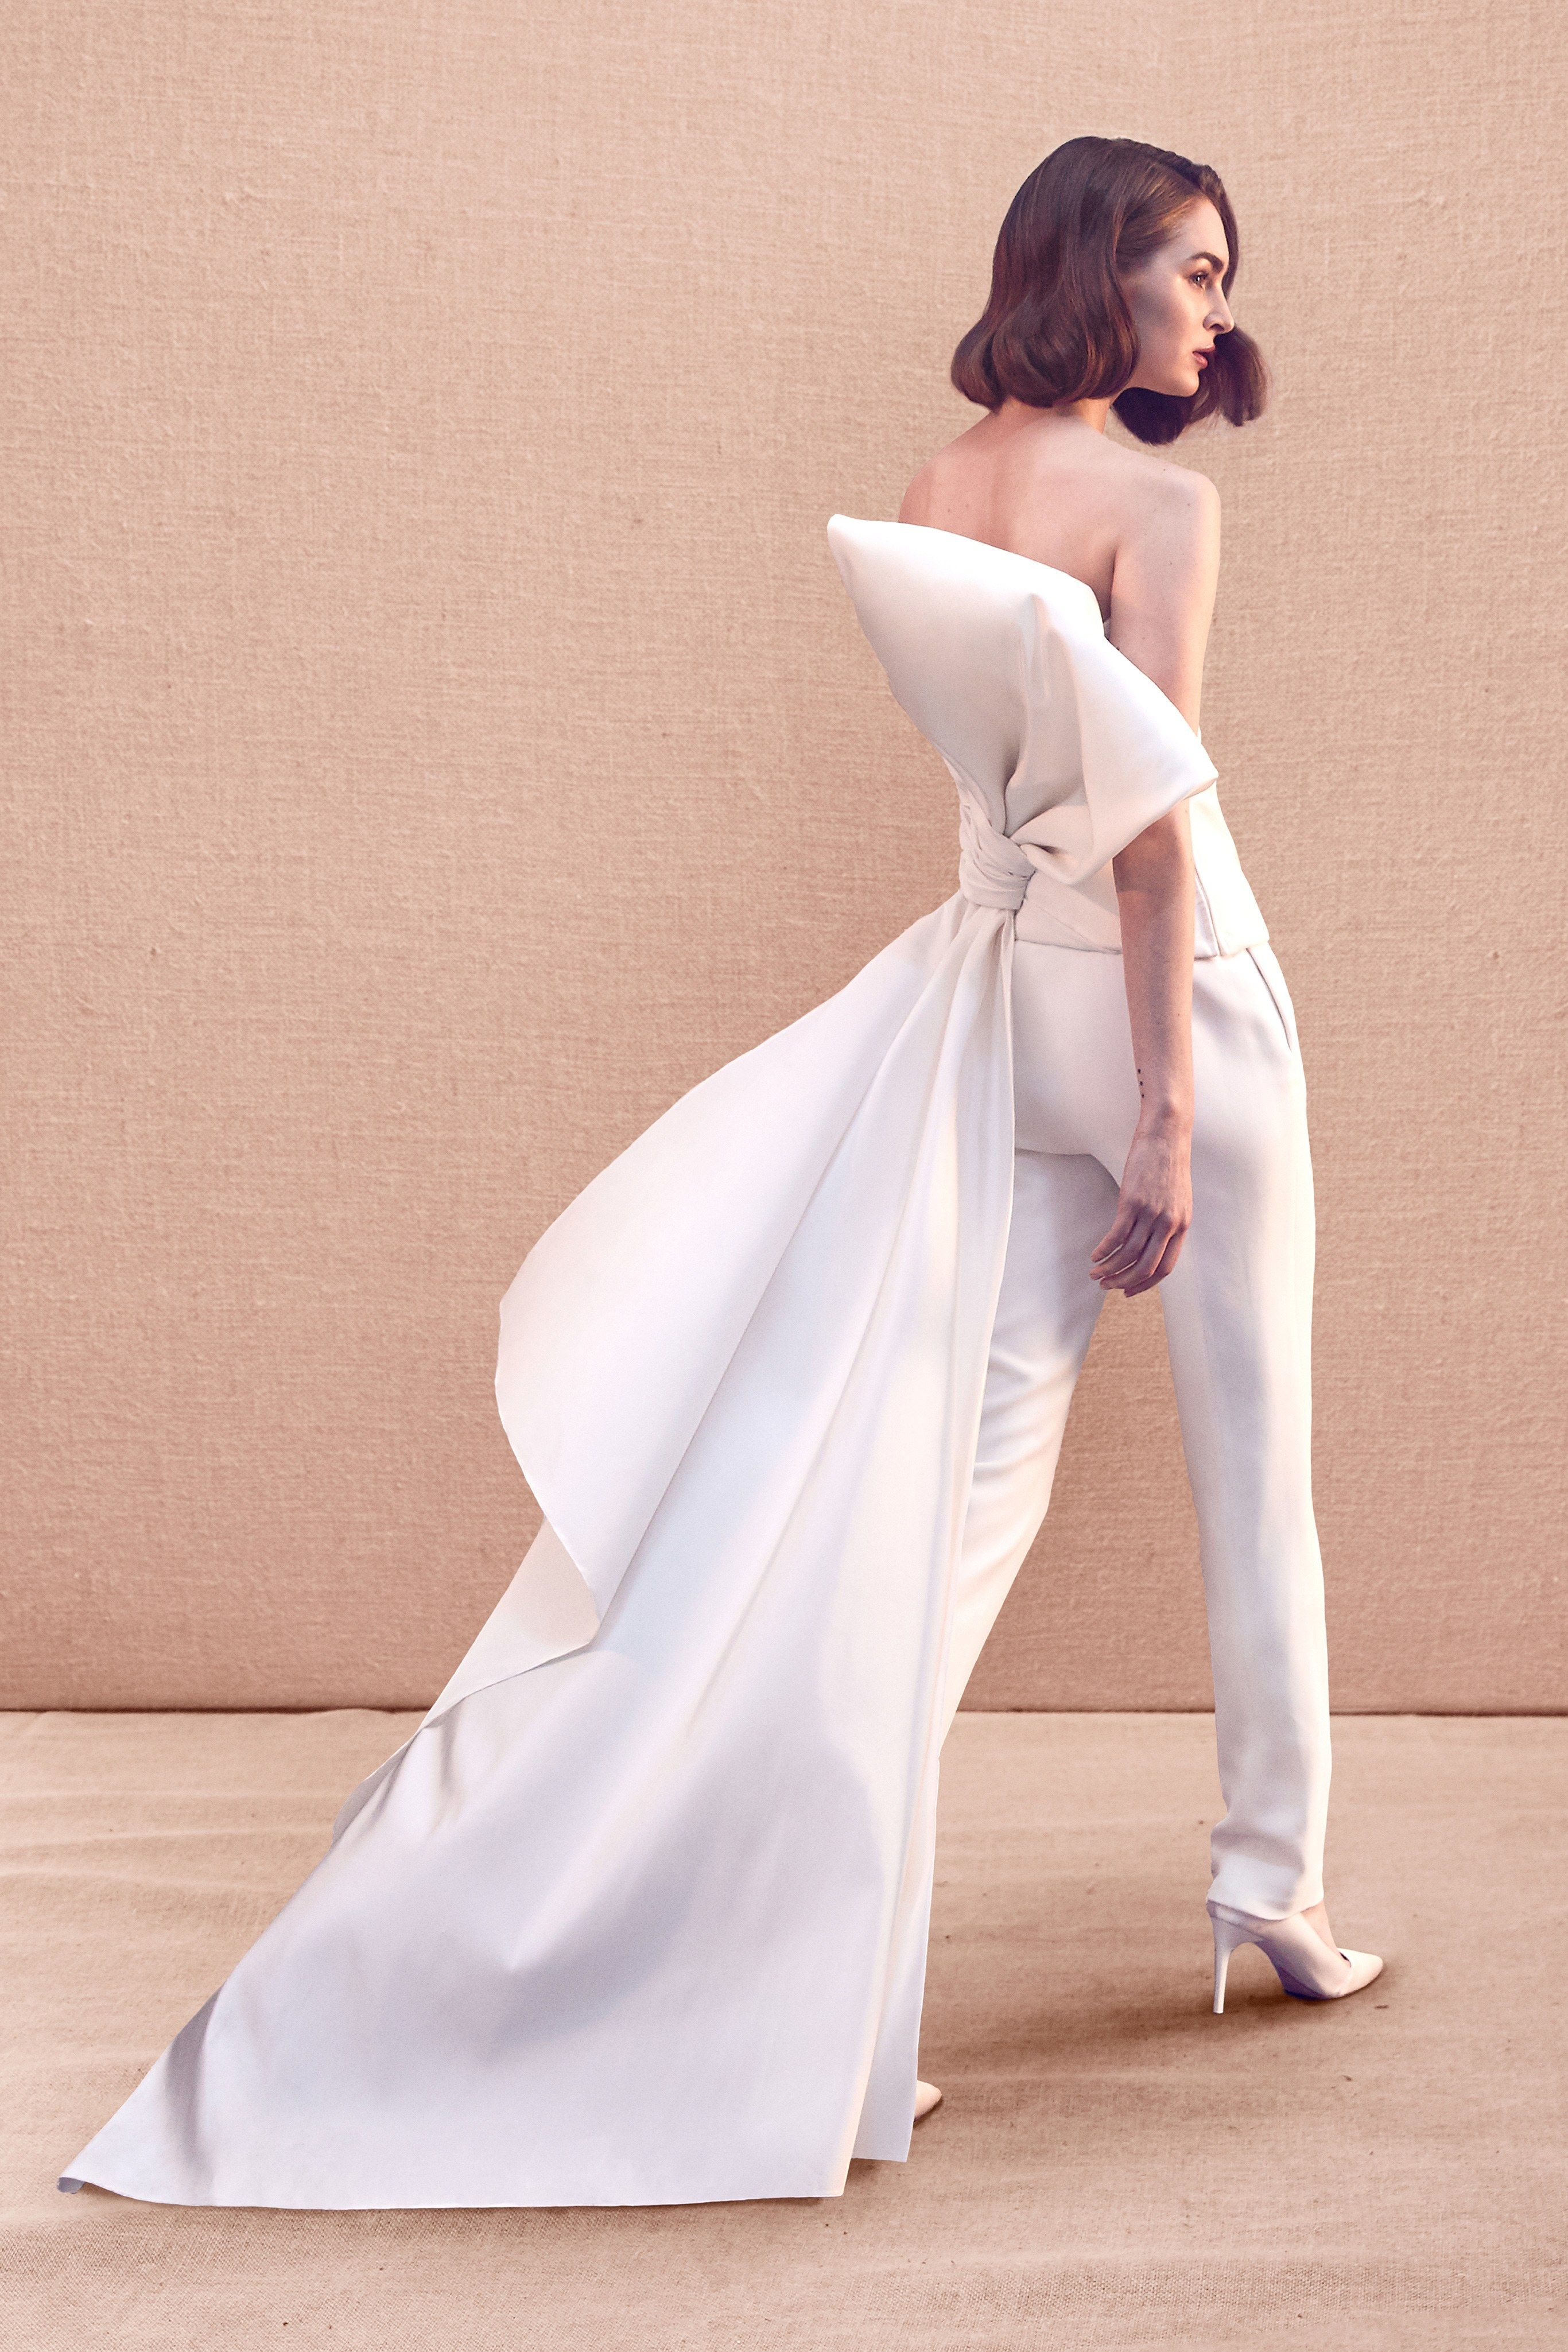 Best Winter Wedding Dresses Trends For 2020 Winter Wedding Dresses And Trends